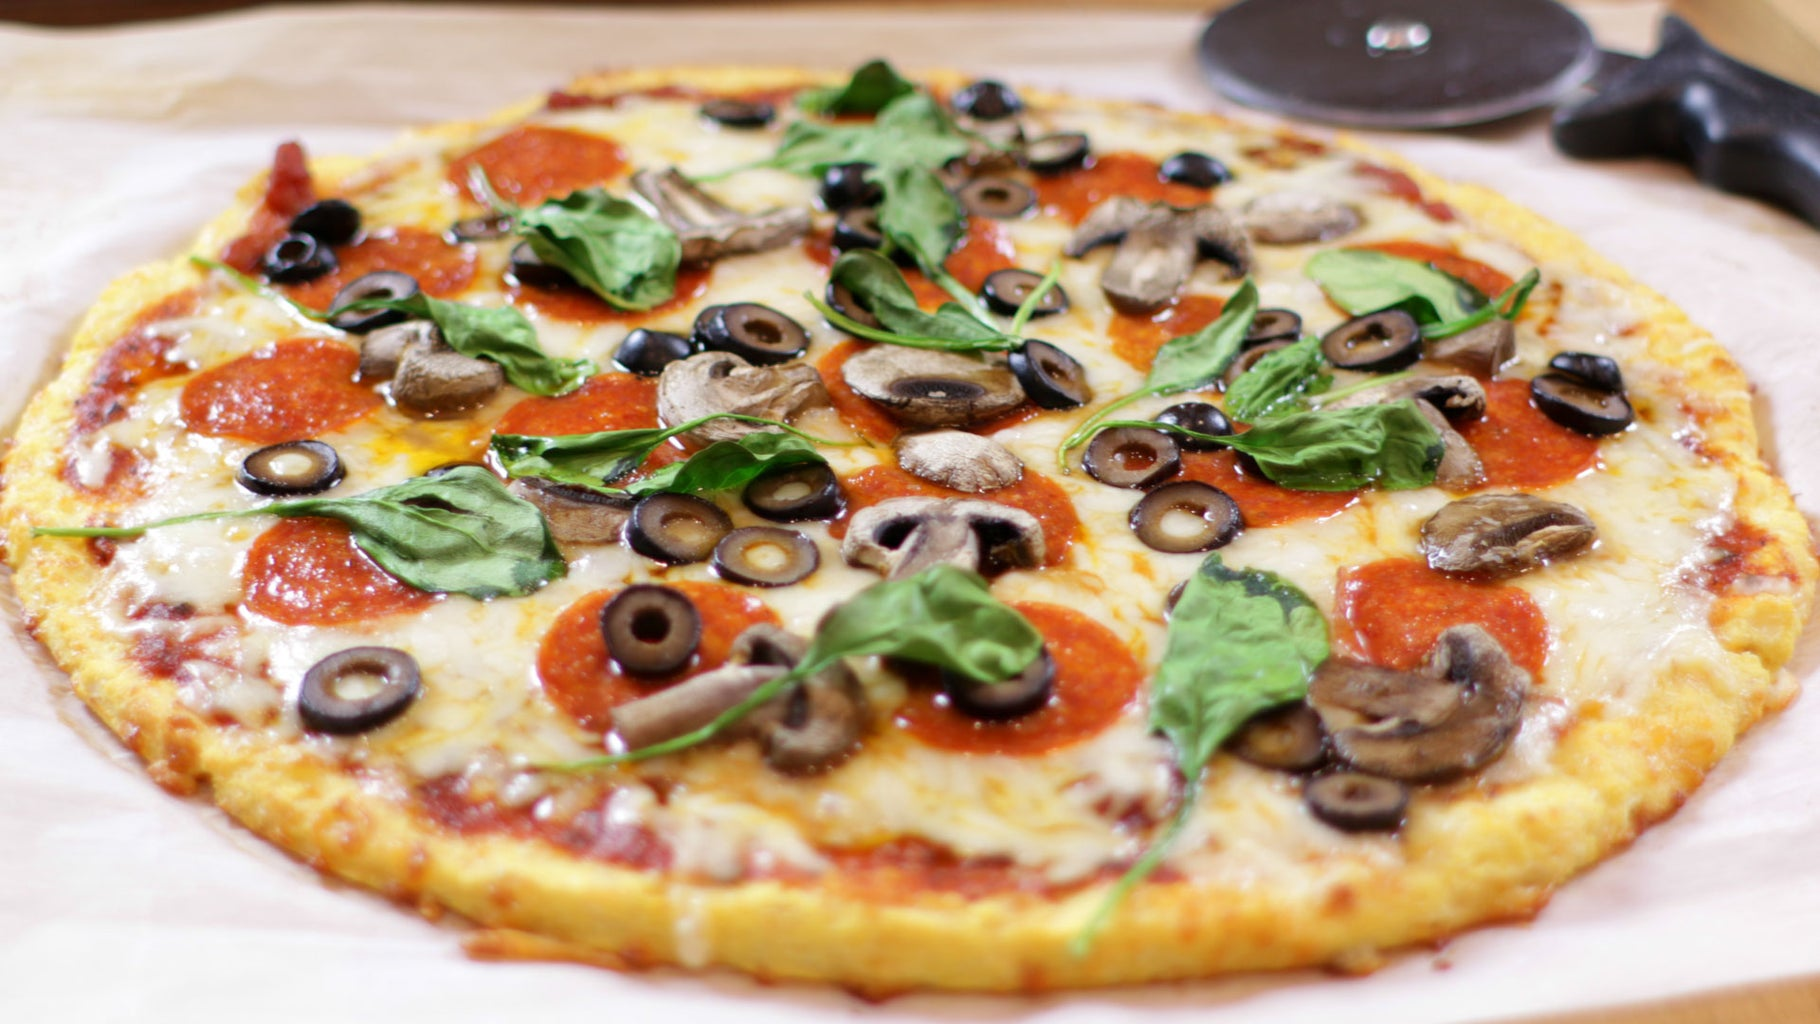 Keto Pizza (Gluten Free and Low Carb)